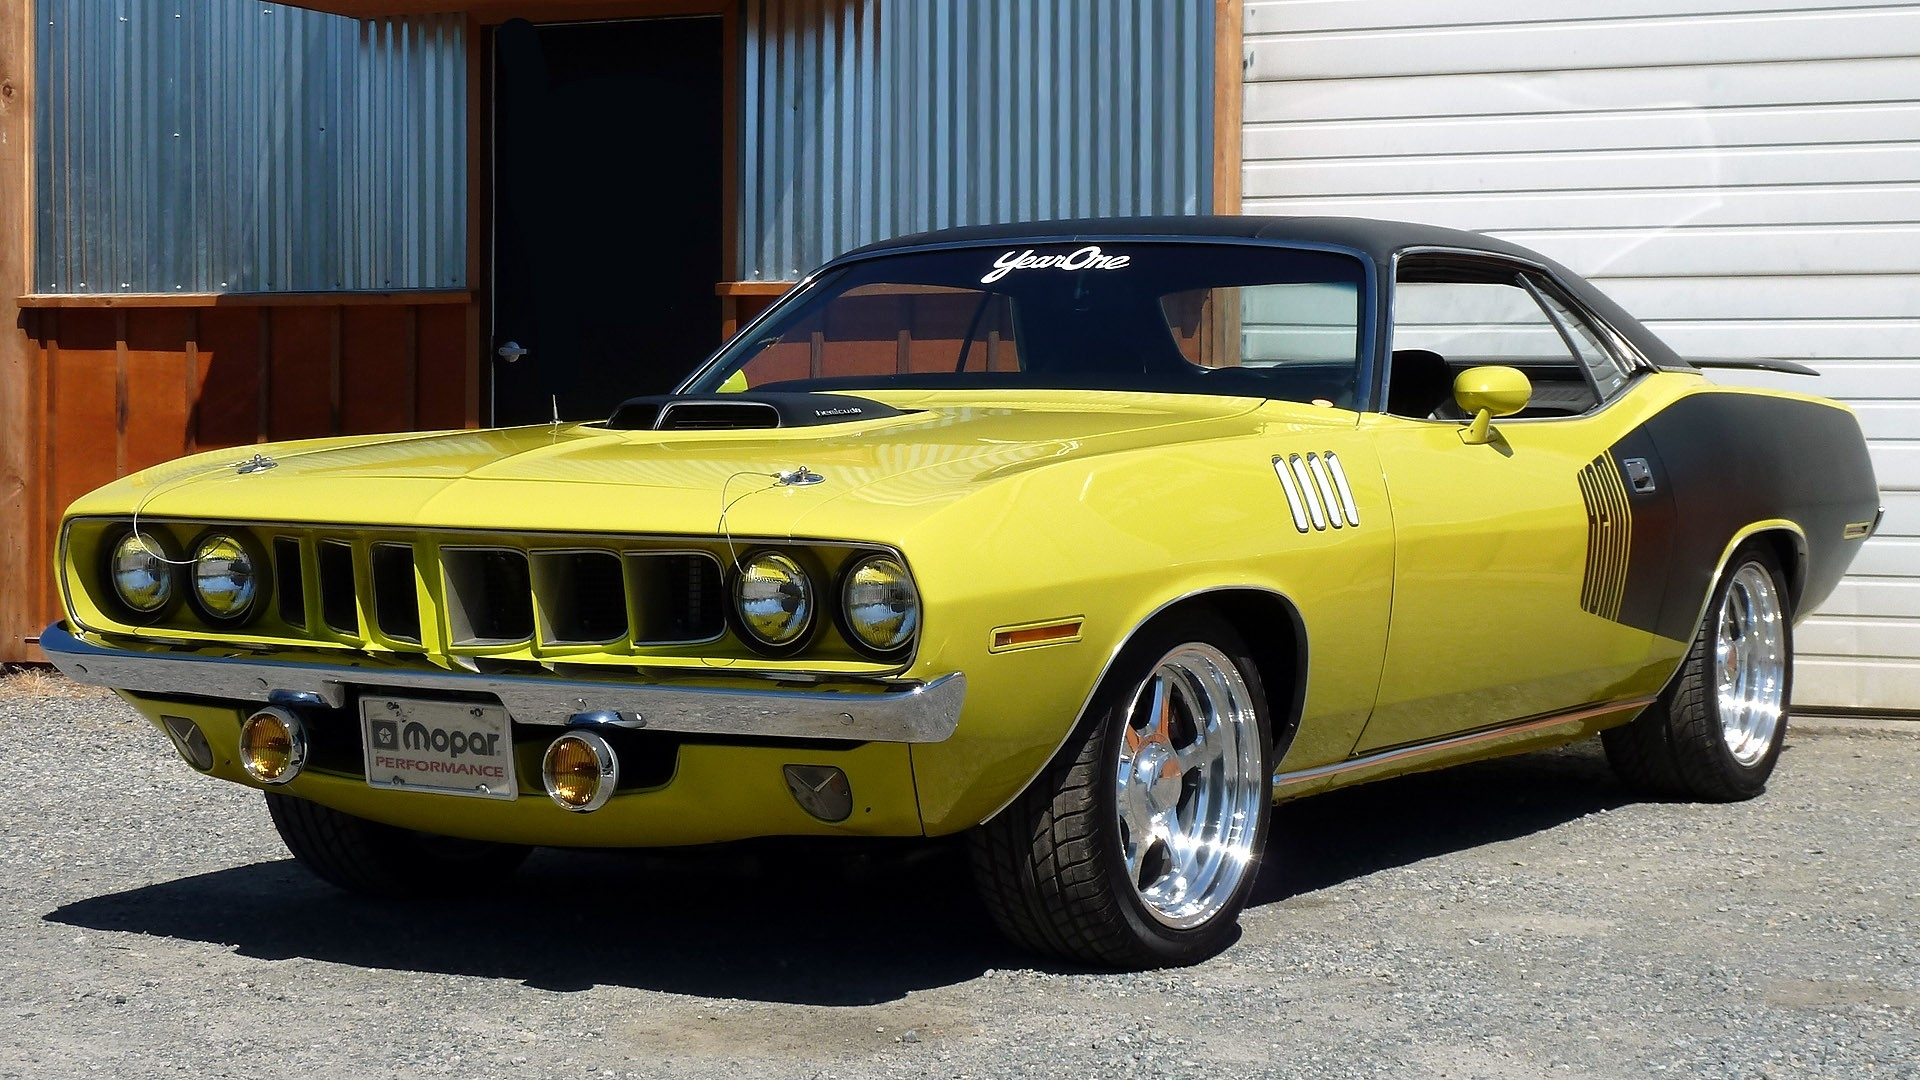 Plymouth Barracuda Classic Muscle Cars Hot Rod Wallpaper